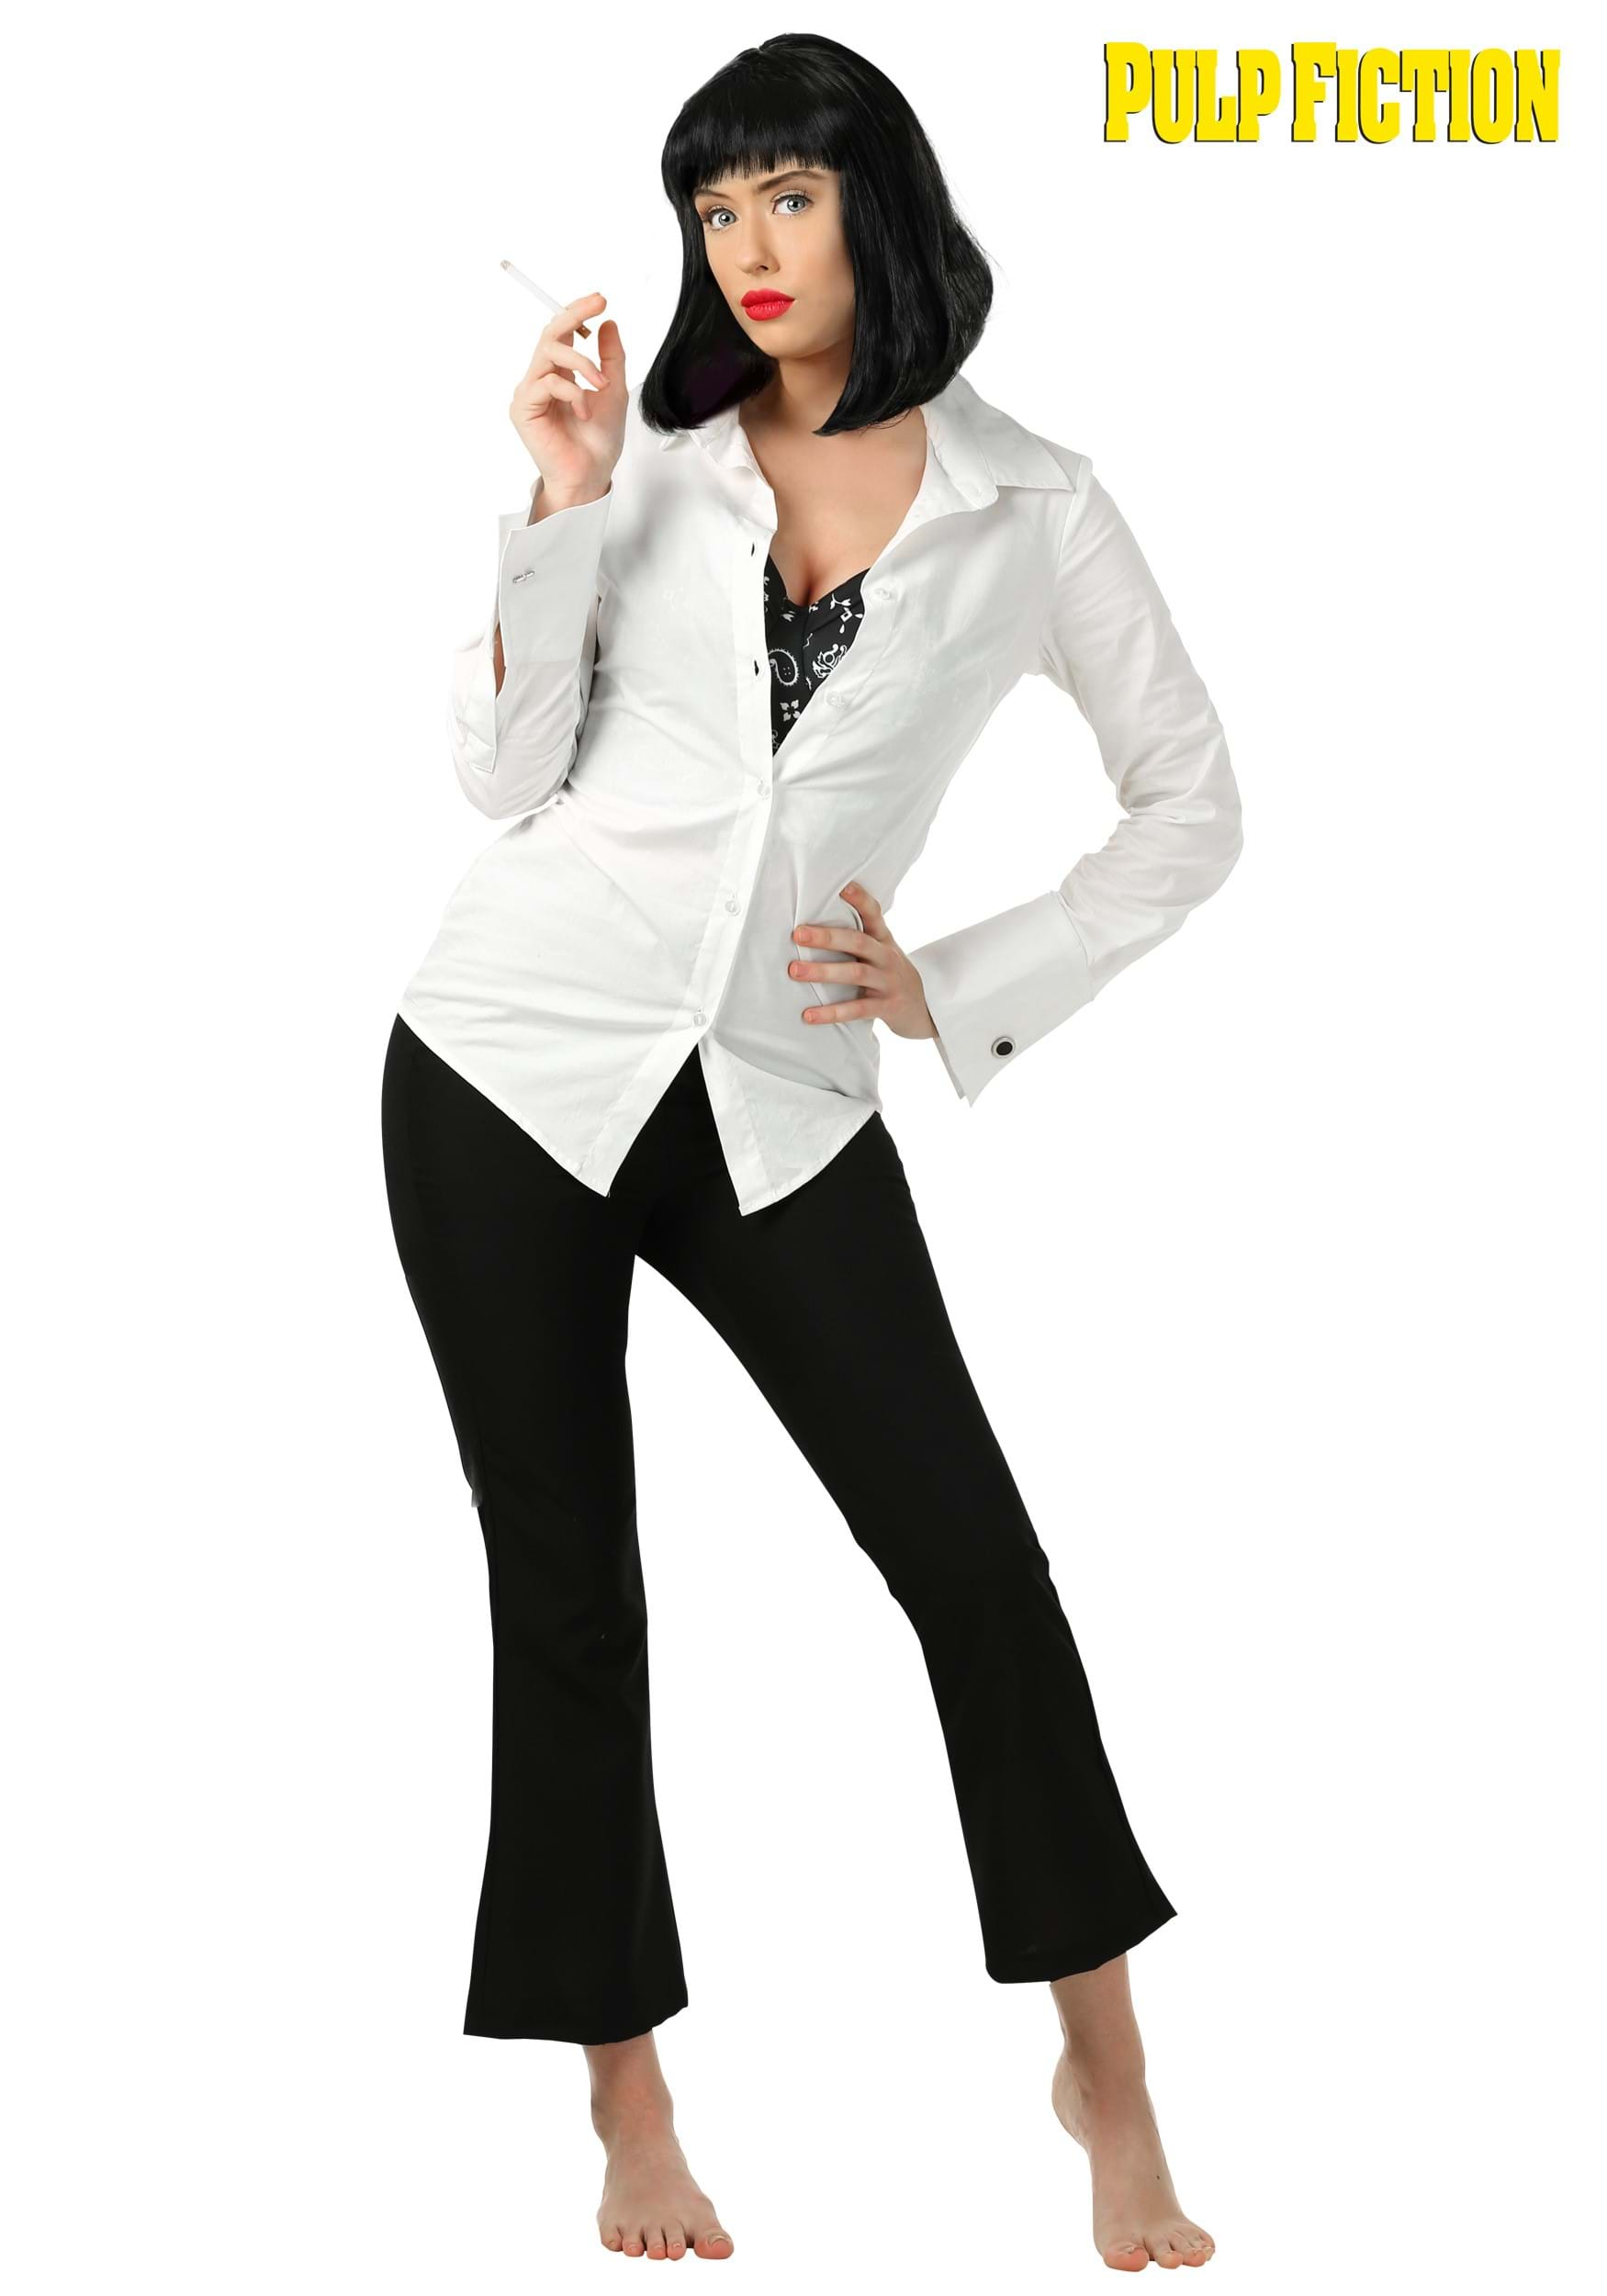 mia wallace pulp fiction adult costume. Black Bedroom Furniture Sets. Home Design Ideas